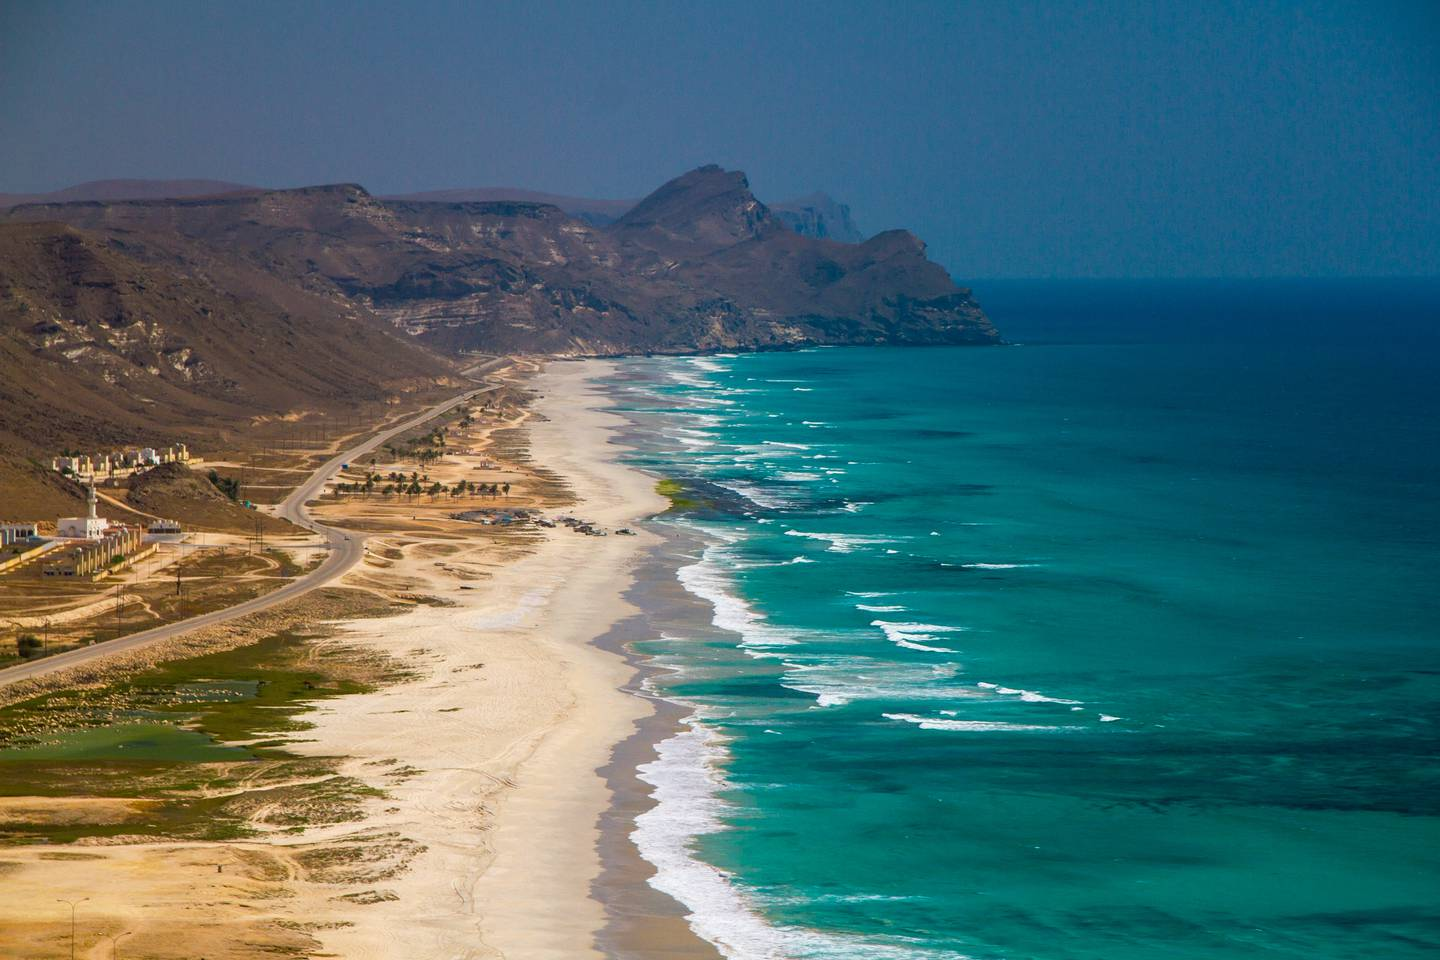 Aerial view of a white sand beach overlooking the Indian Ocean and mountains. Salalah, Oman. (Getty Images) *** Local Caption ***  ut23se-top10-oman02.jpg